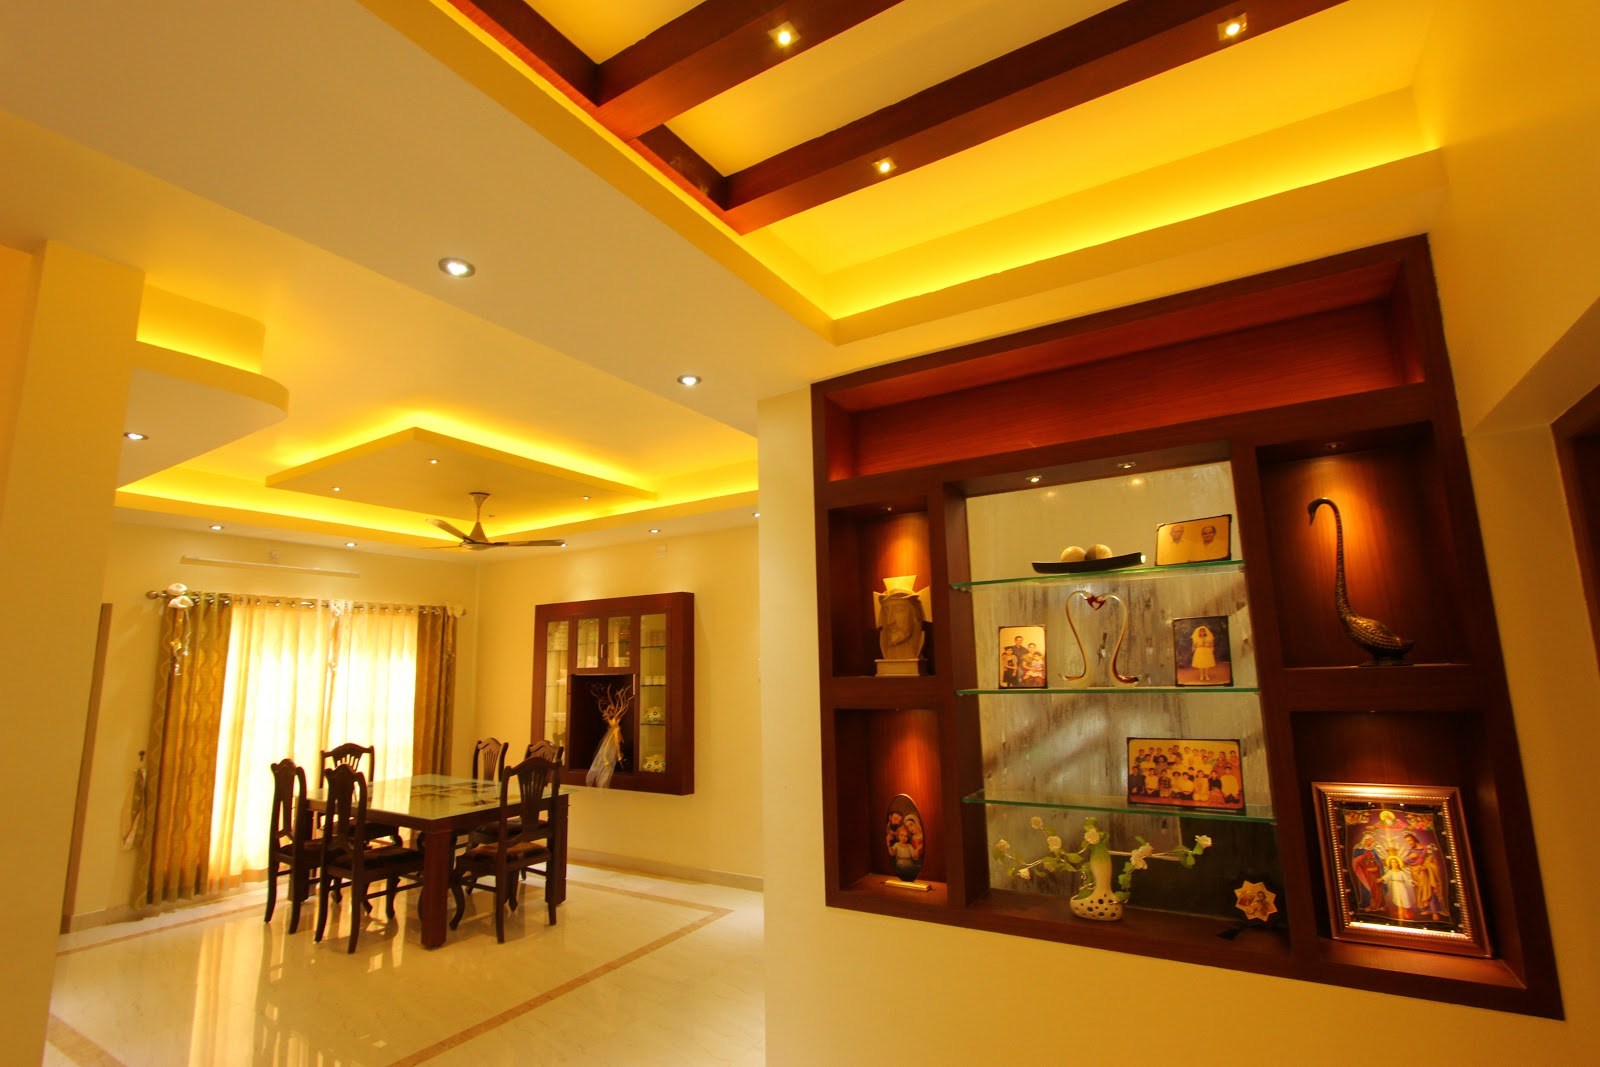 Shilpakala interiors award winning home interior design - Interior home design pic ...